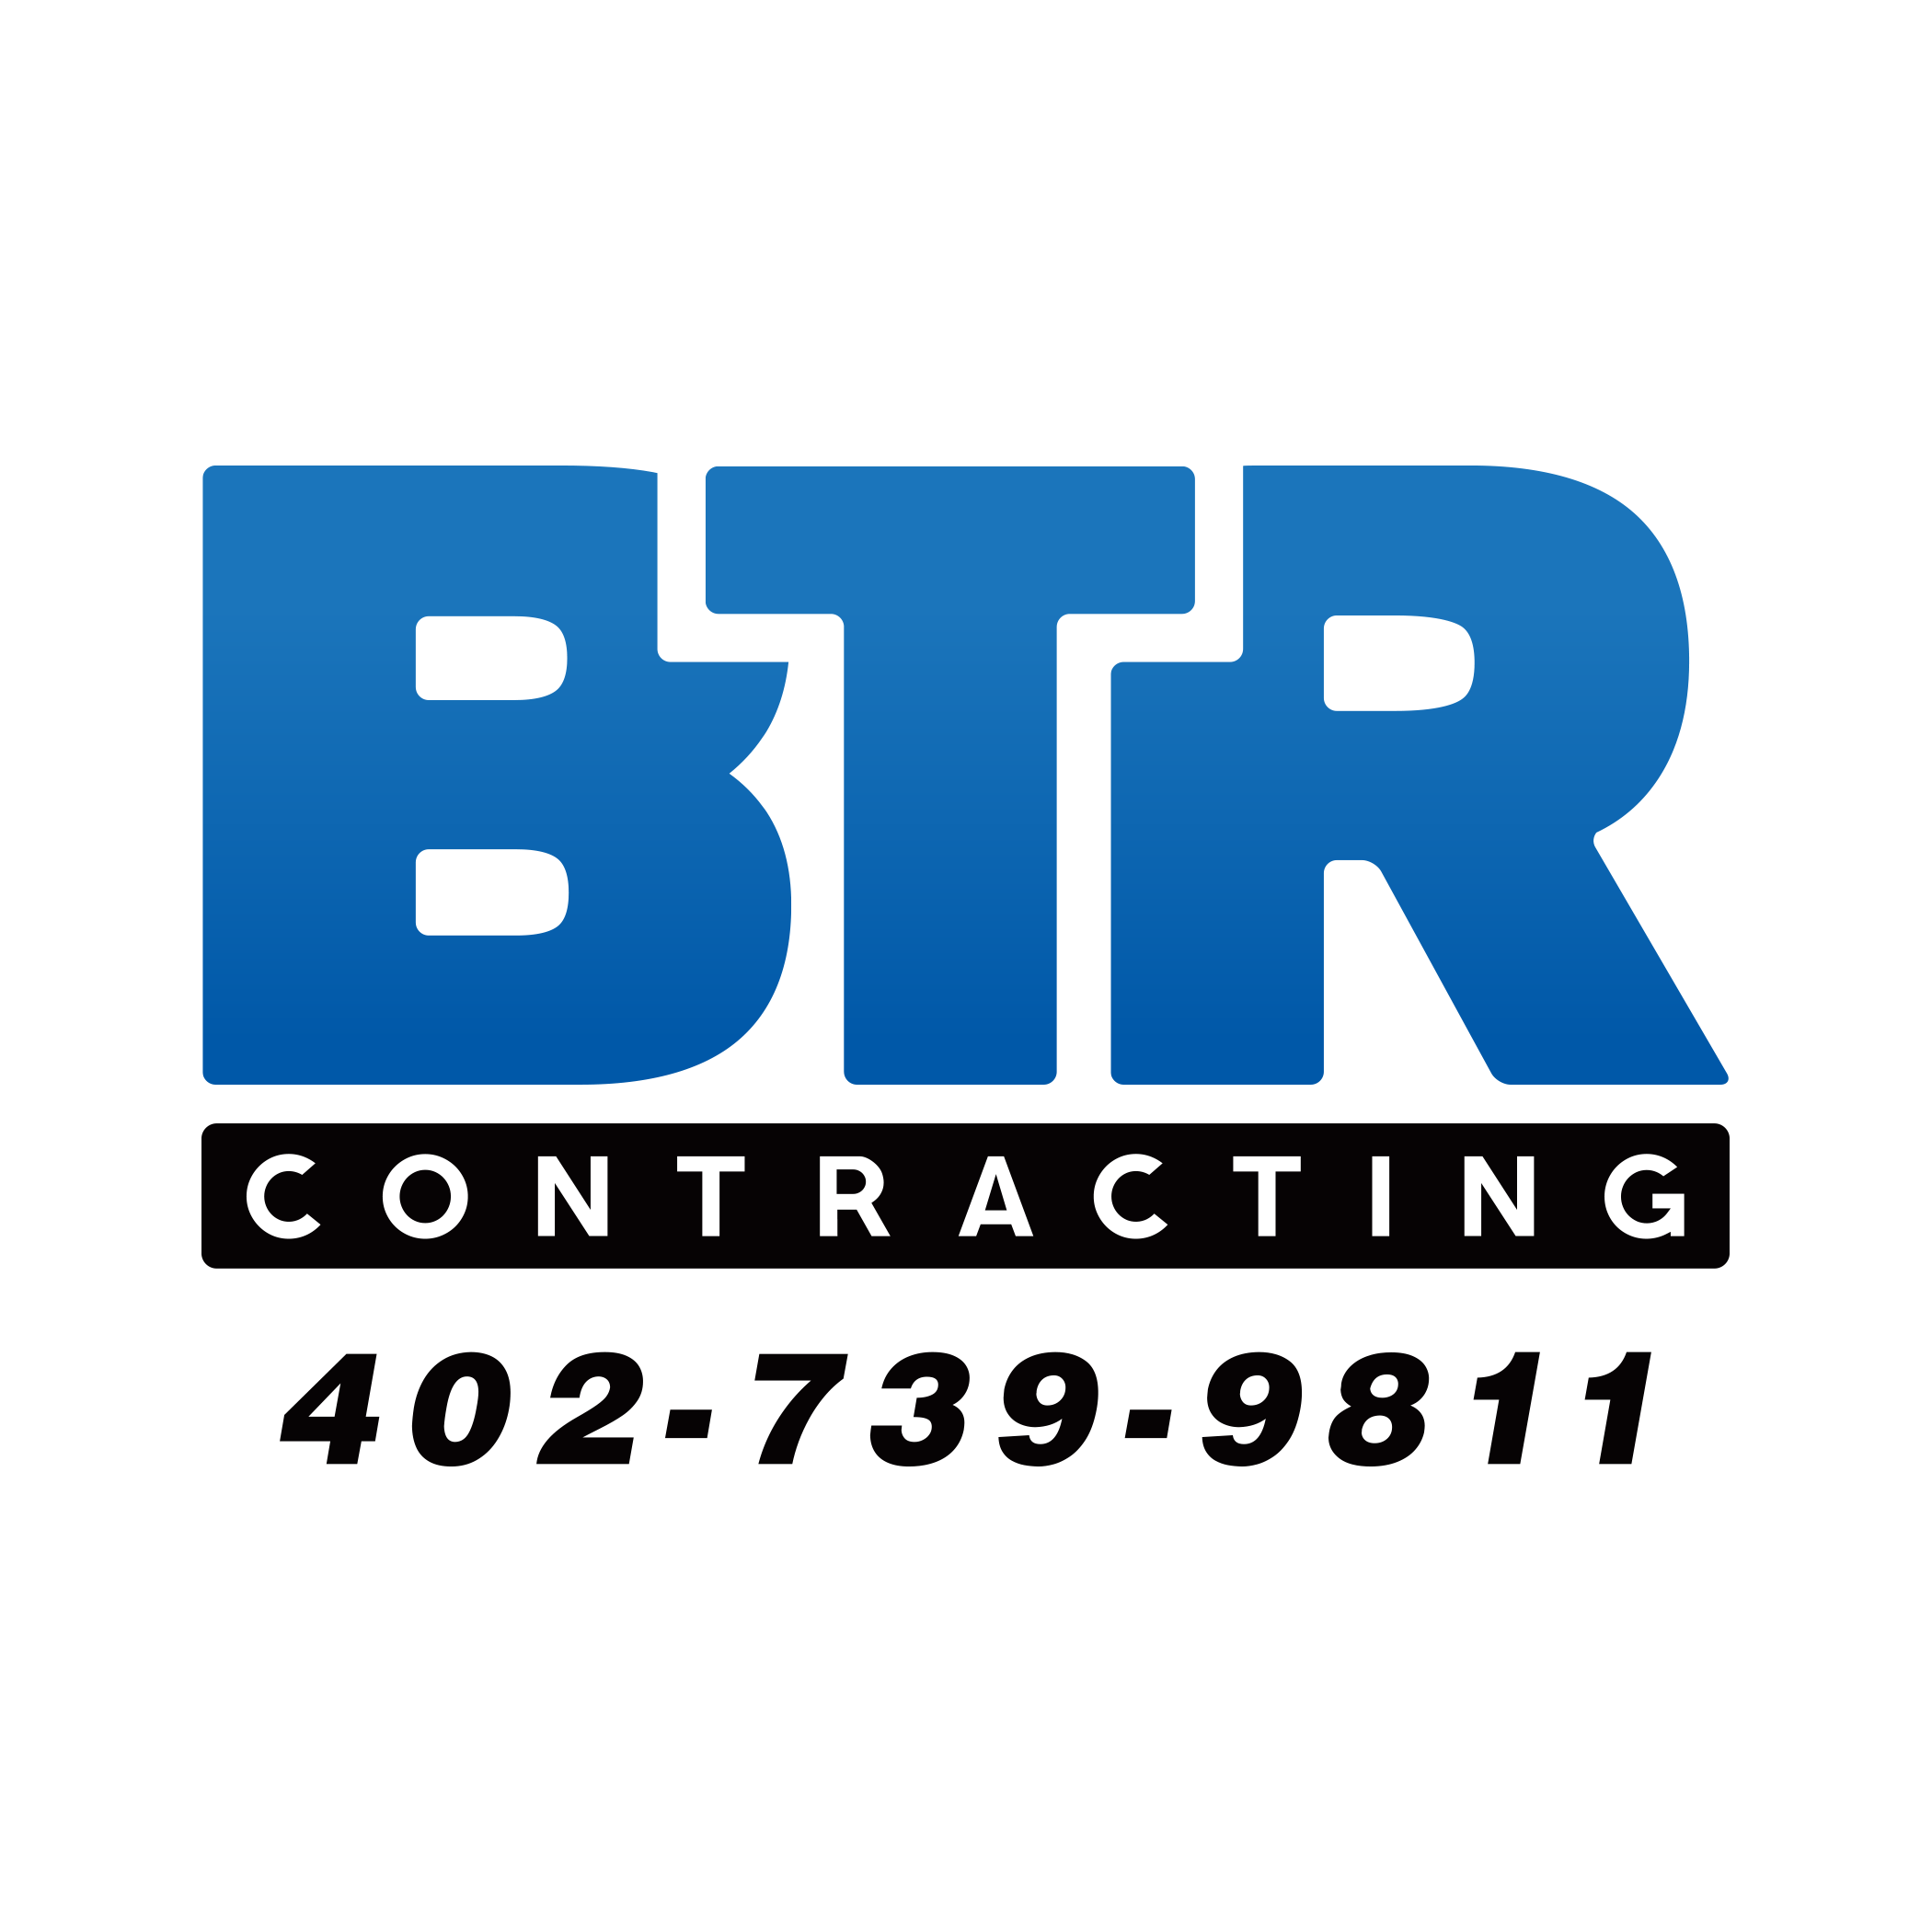 BTR numbers transparent background